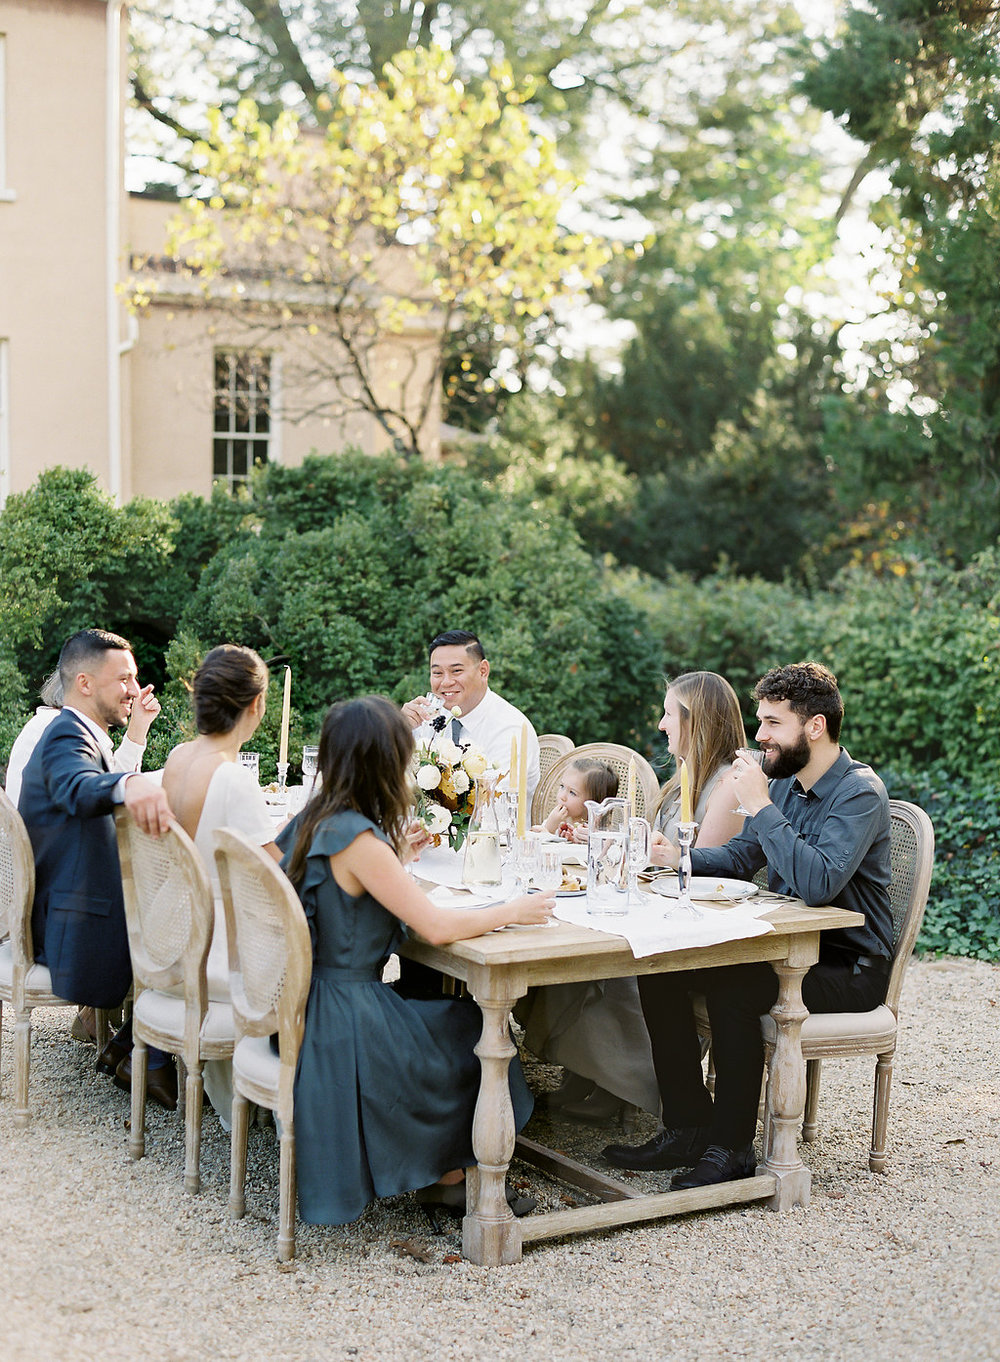 Fine art film photographer photography wedding engagement washington DC georgetown virginia modern bride destination inspiration tuscan inspired minimal classic timeless california ny dining table